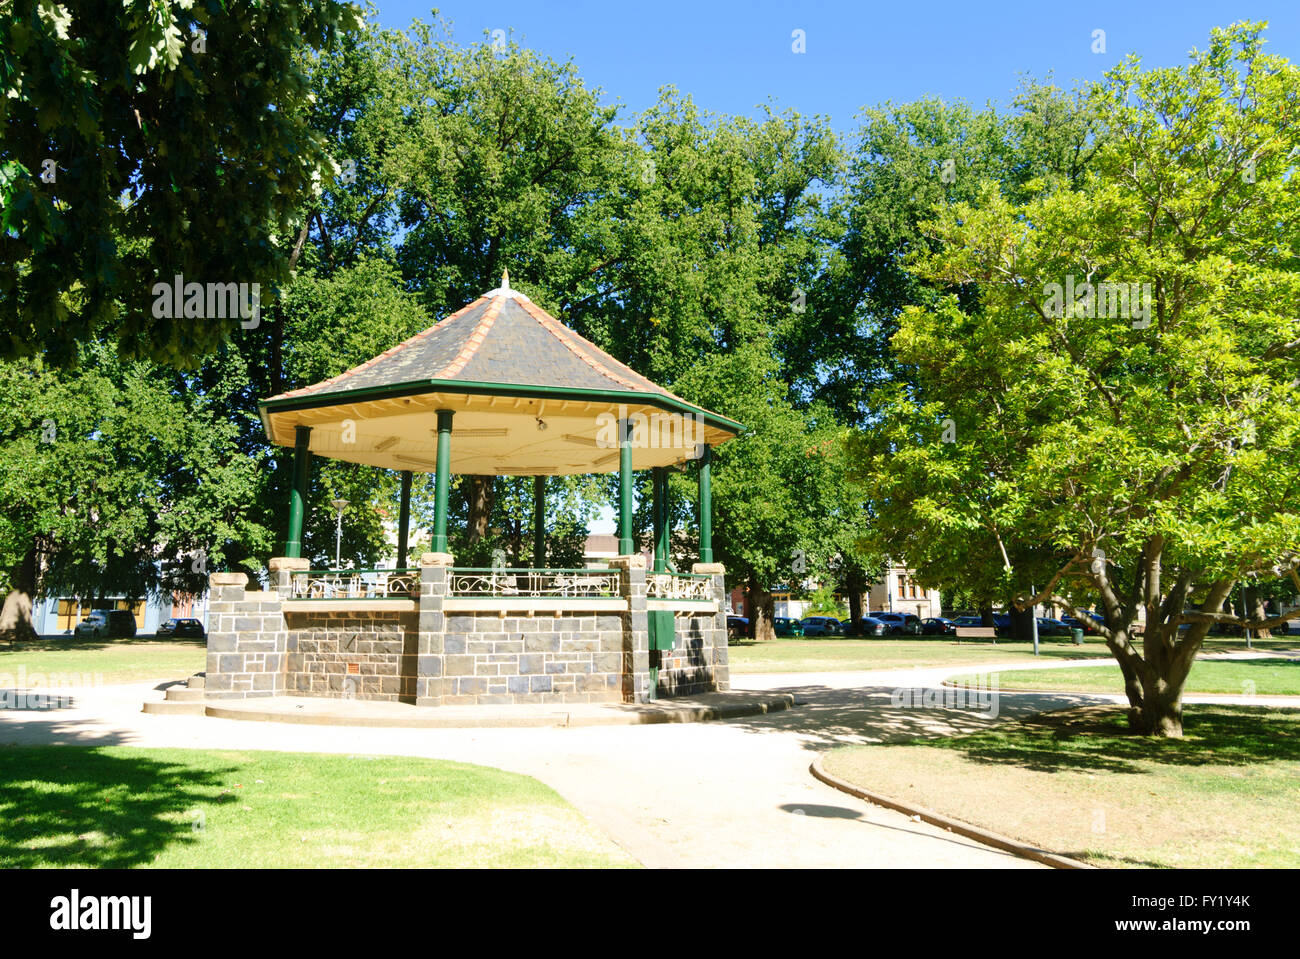 Bandstand in Cook Park, Orange, New South Wales, Australia - Stock Image